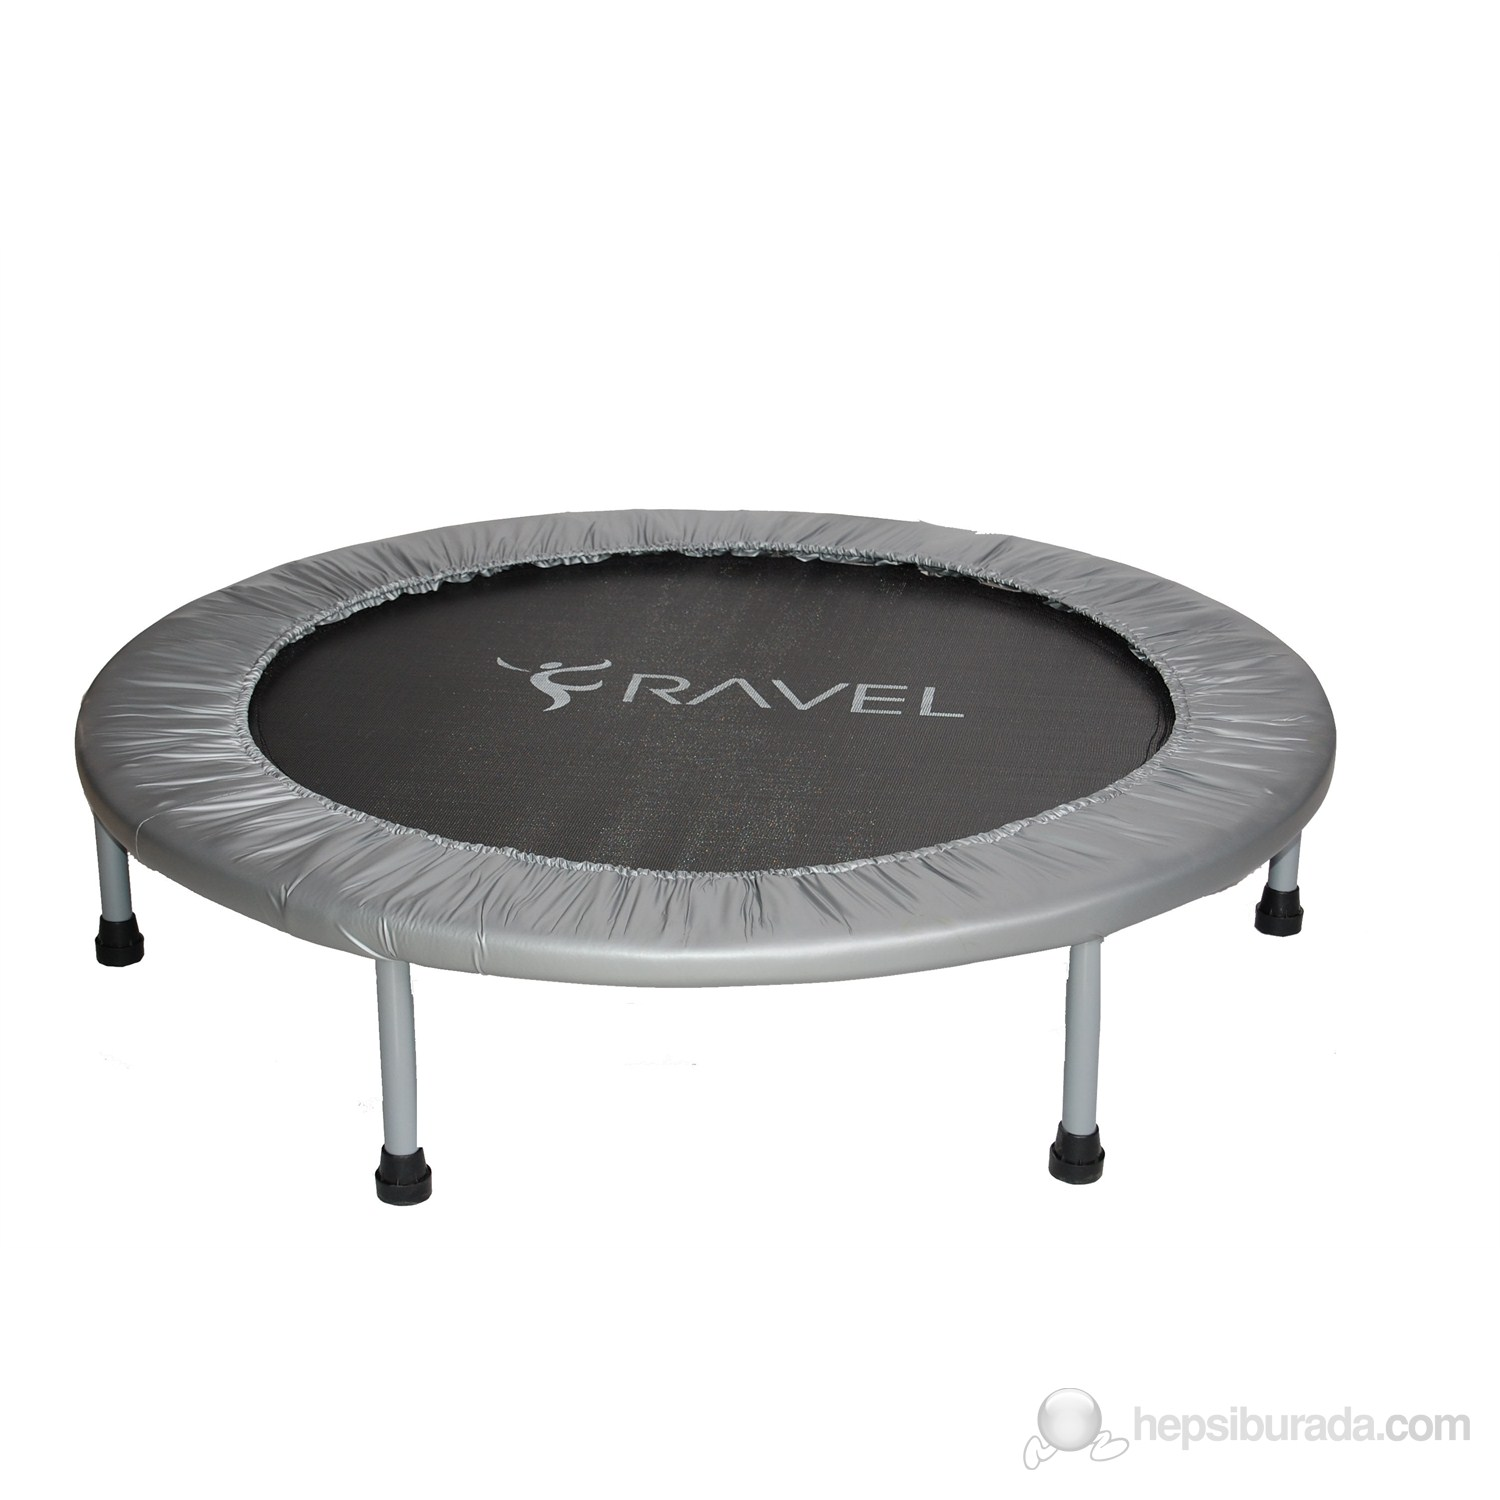 "Ravel Long-Life Renkli Trampolin 40"" ( 102 Cm )"